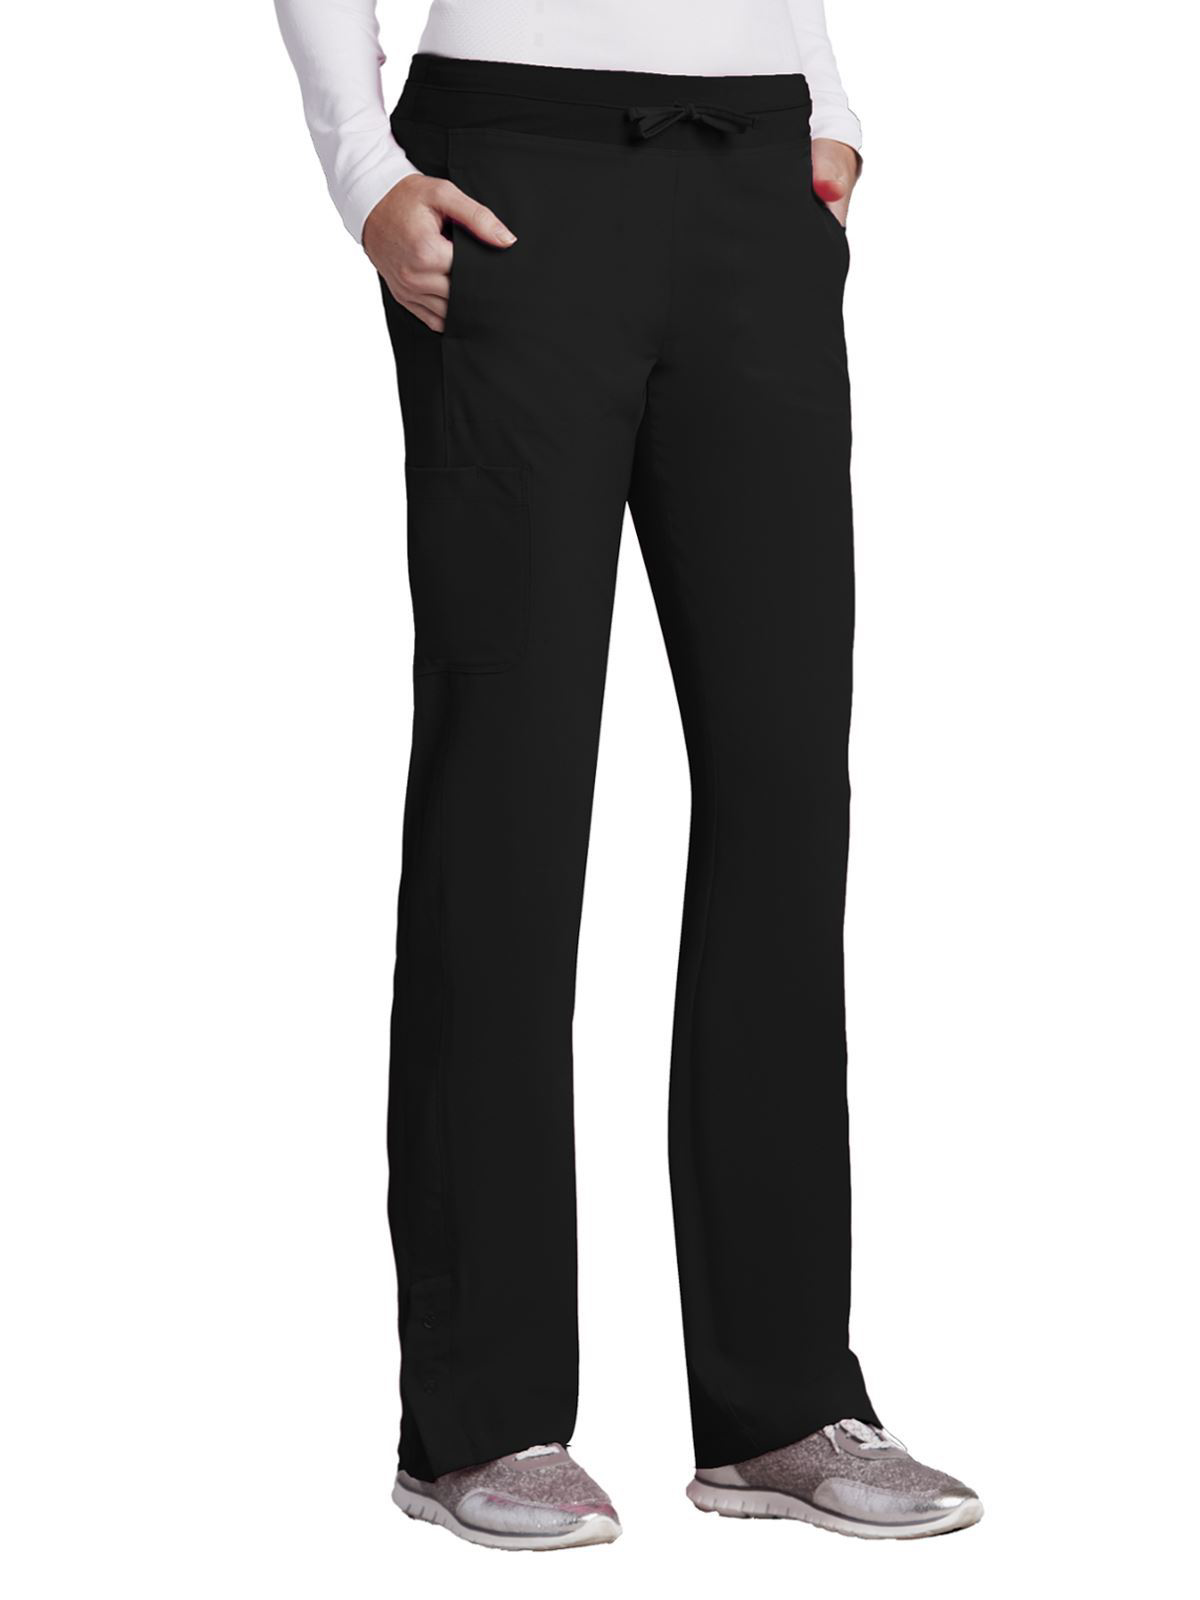 Scrub Authority - Barco One Women's Cargo Track Pant